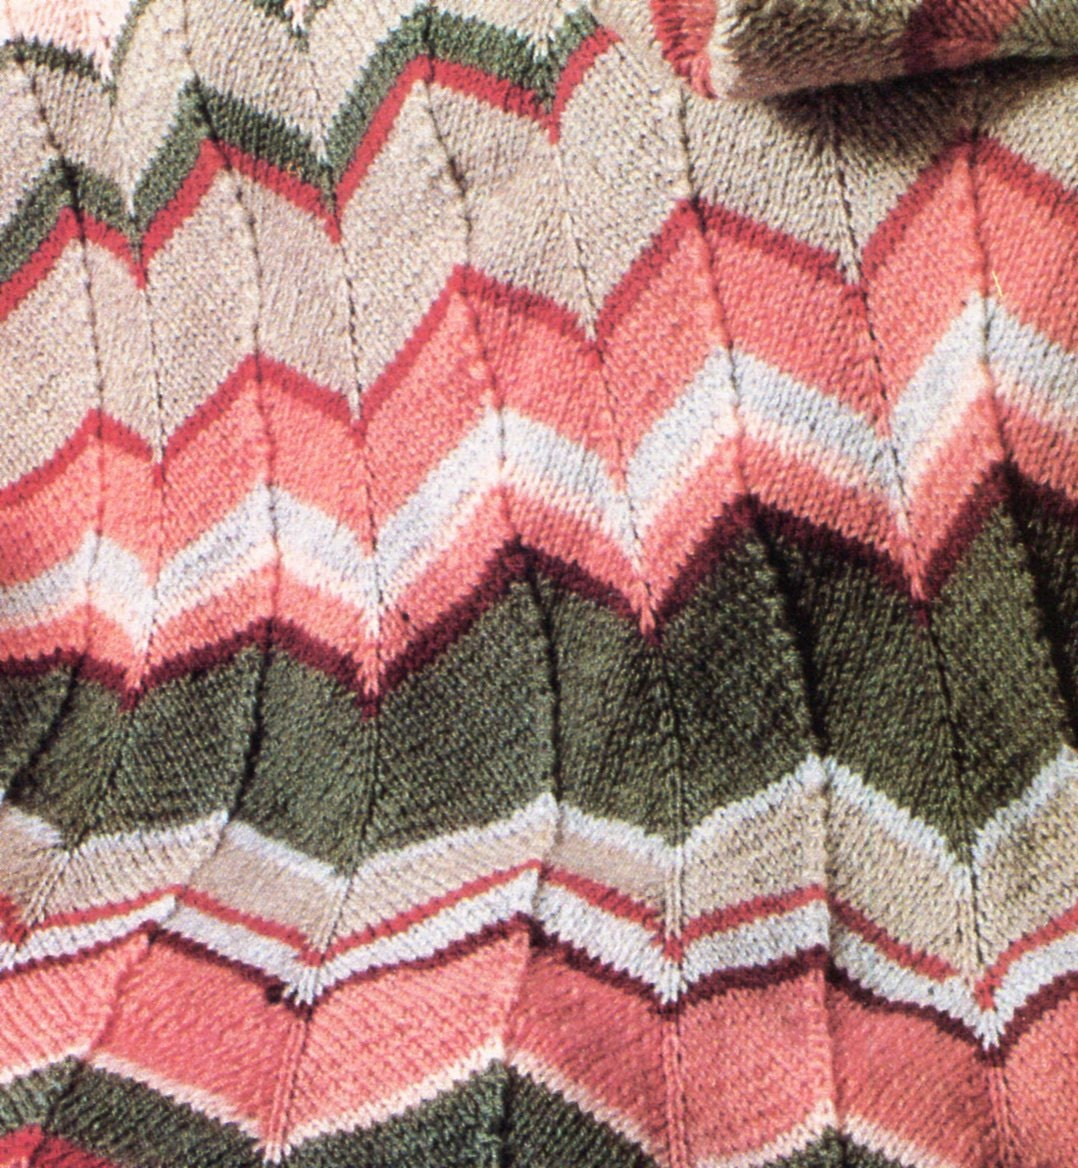 Chevron Afghan Pattern Knit : Classic 1970s Chevron Blanket Knit PATTERN by PearlShoreCat